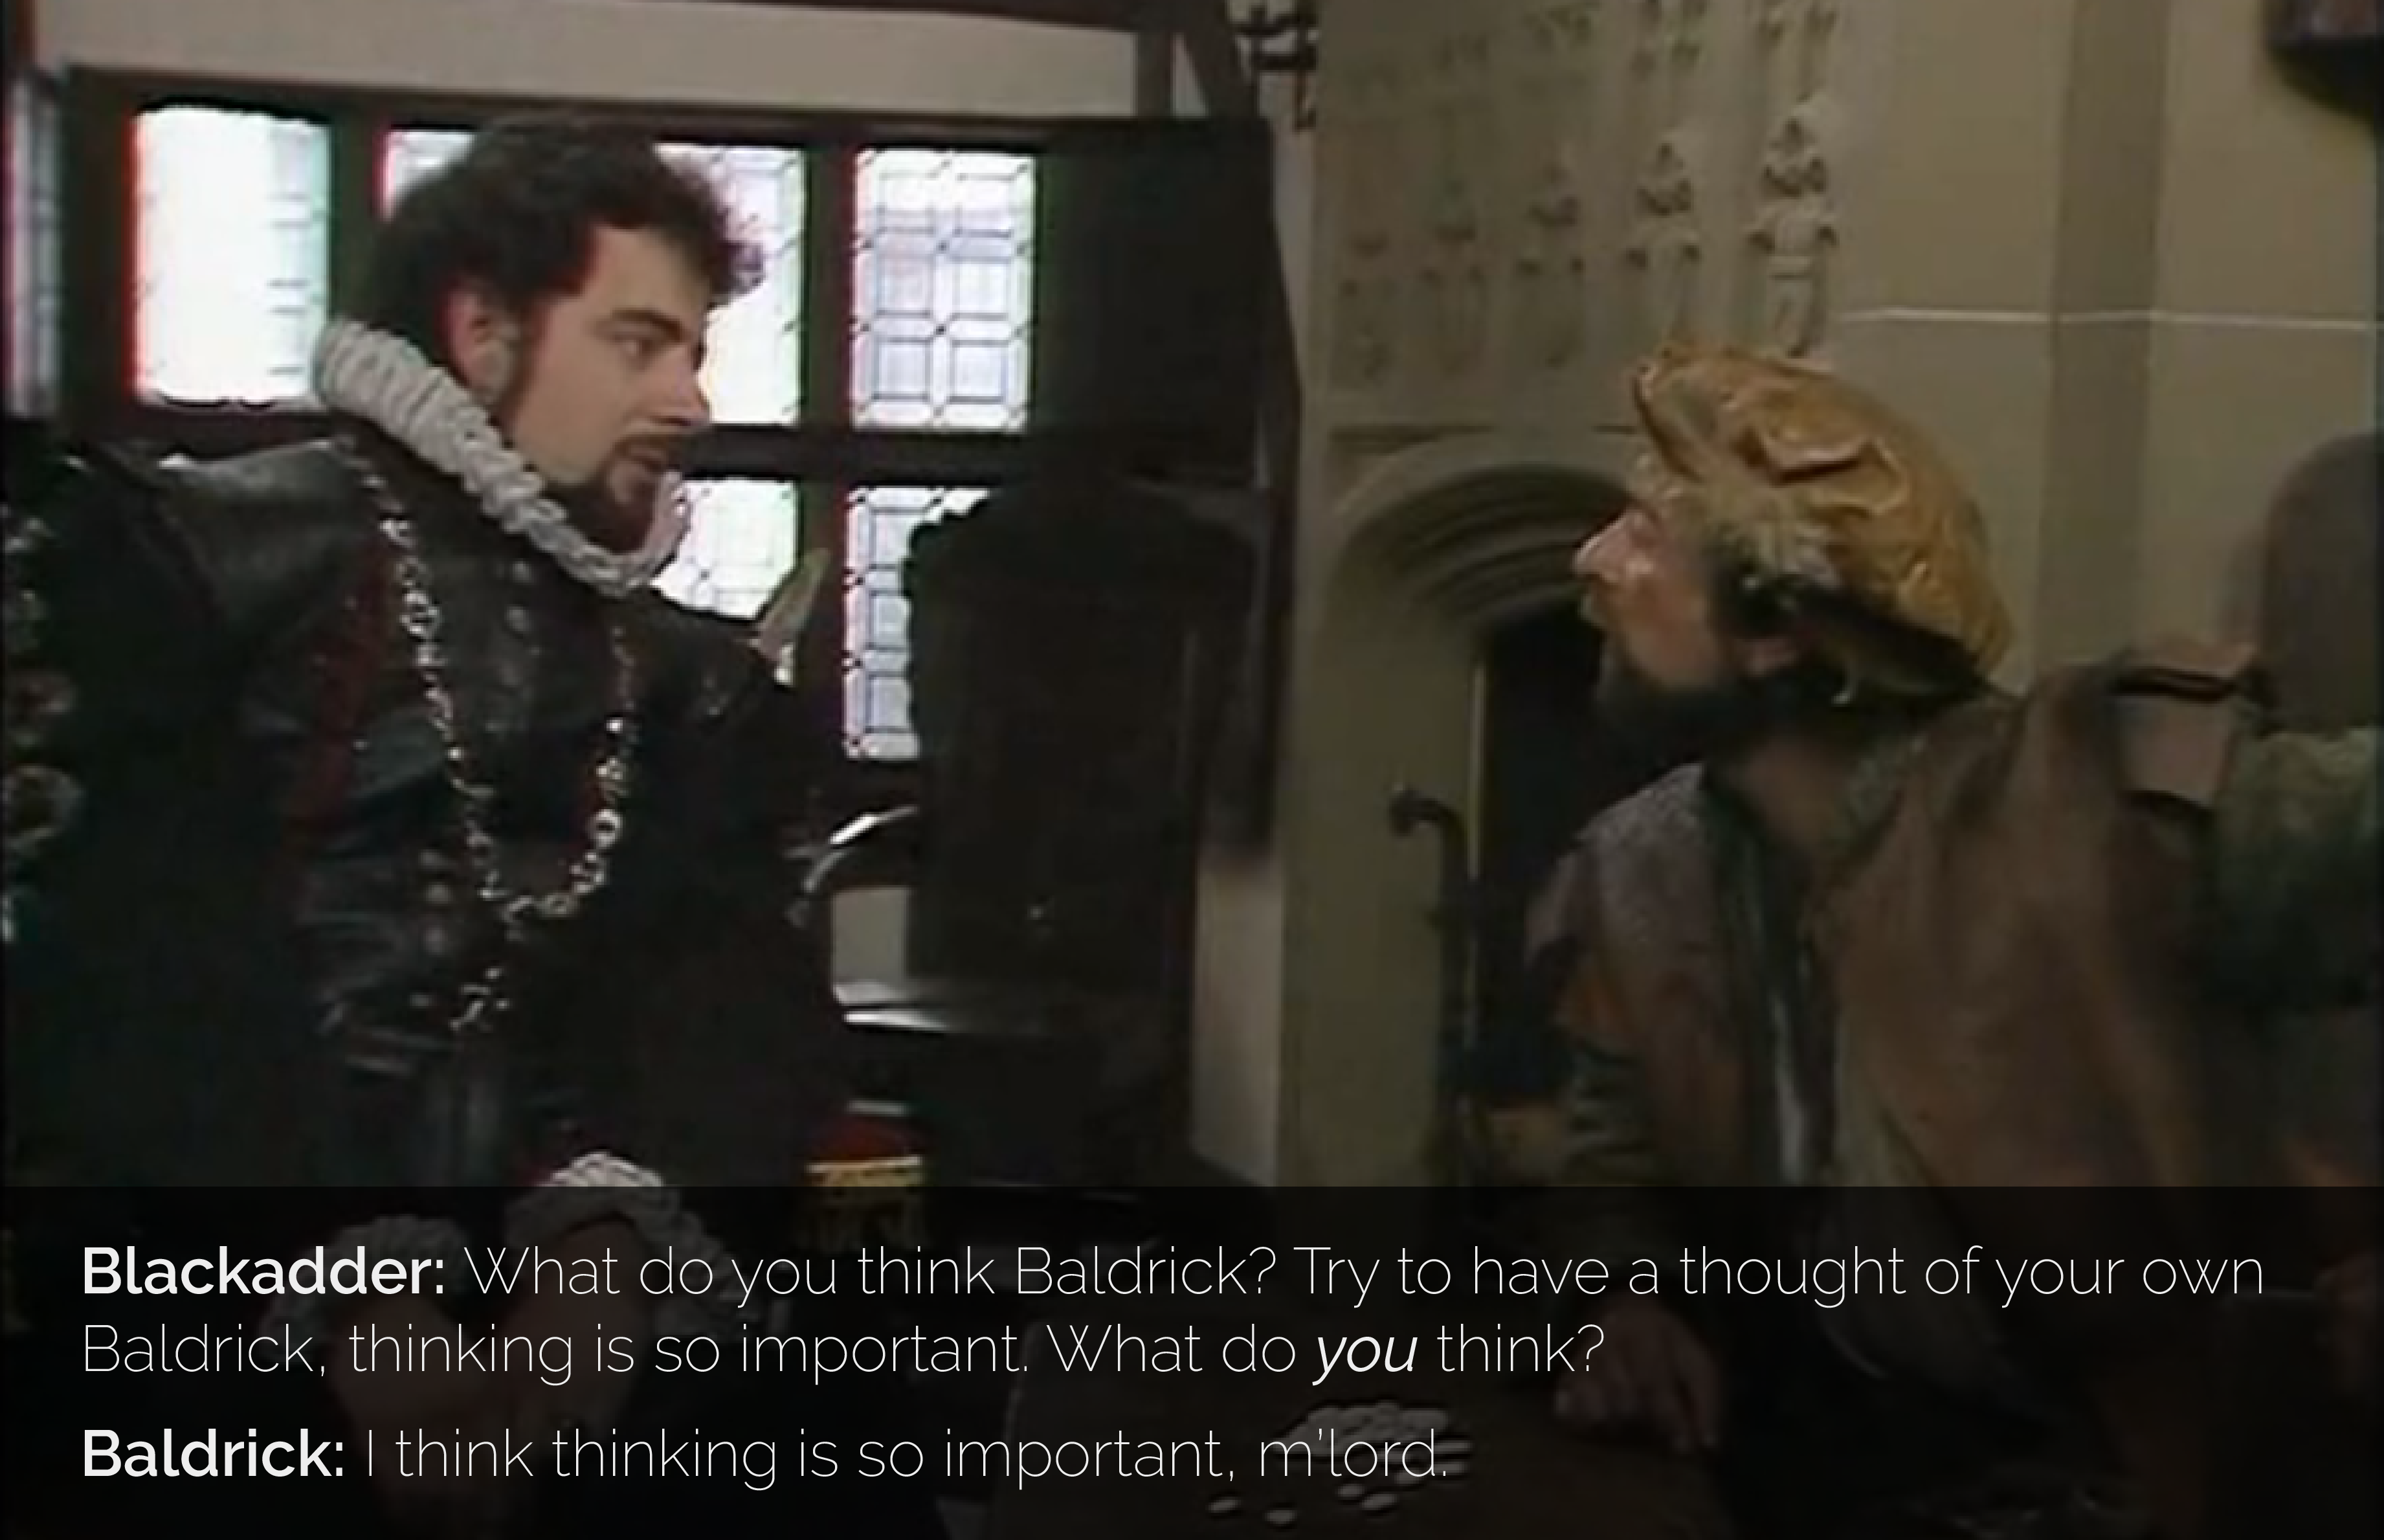 Blackadder